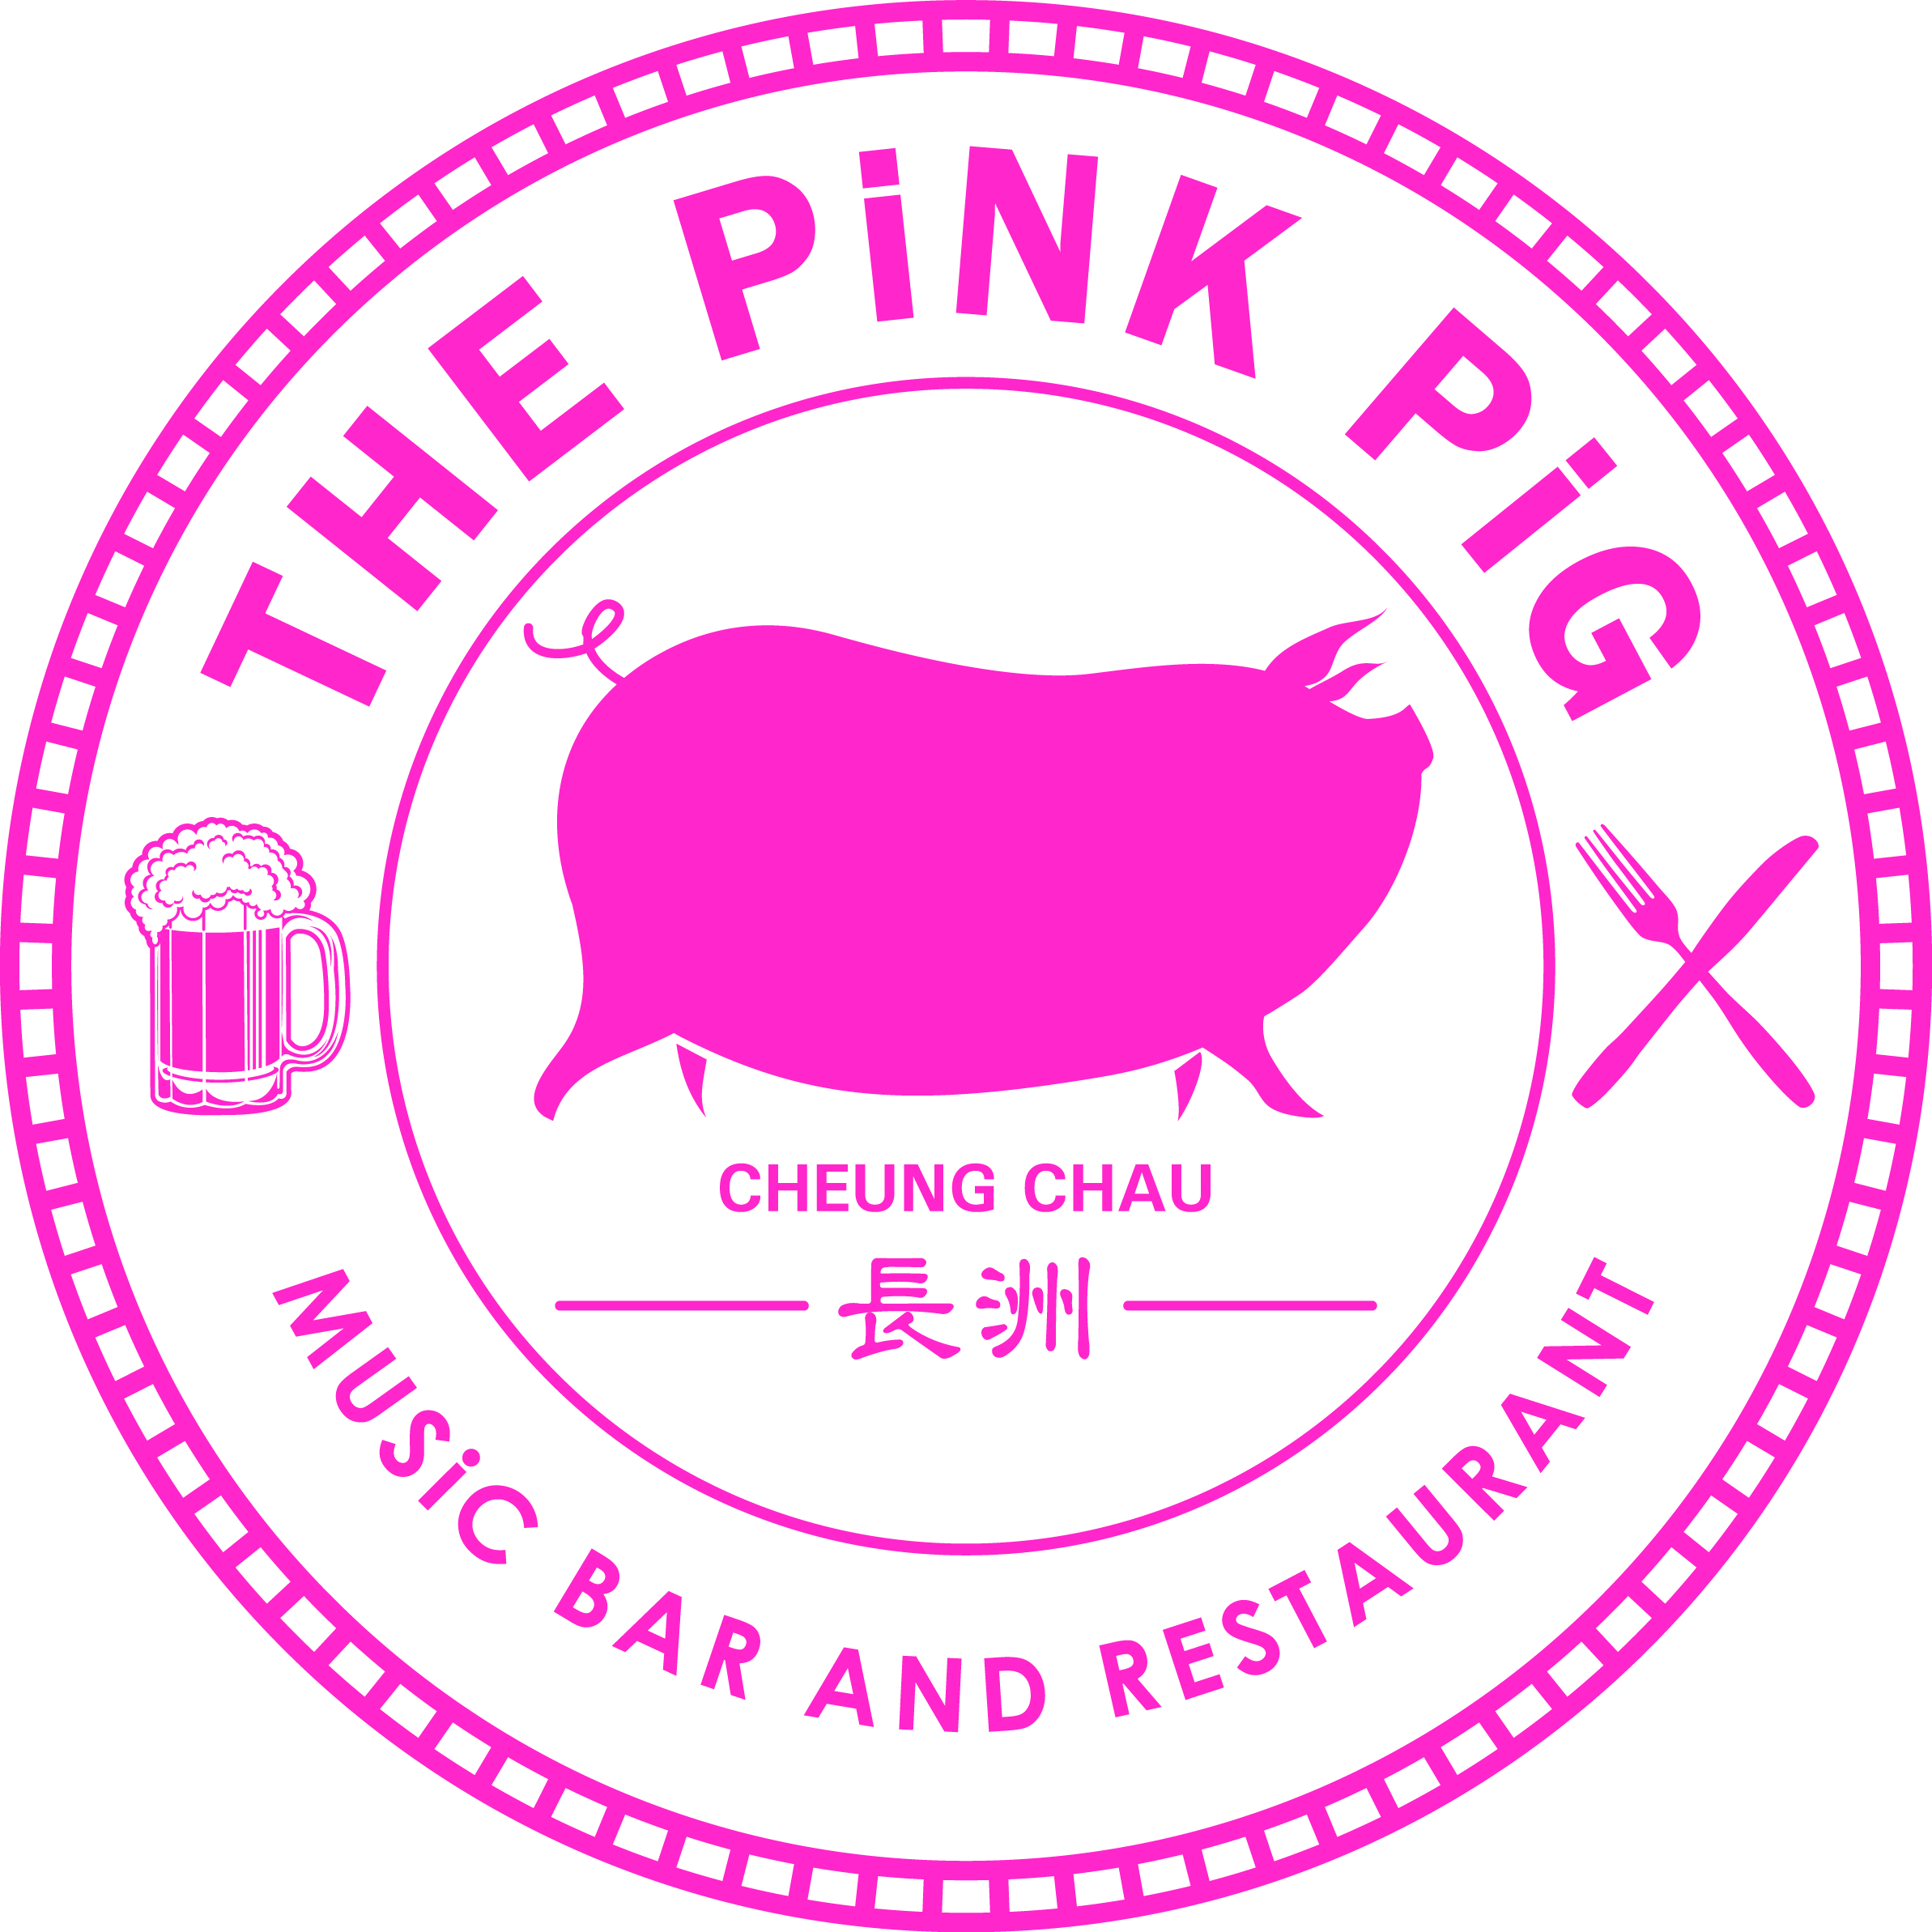 The Pink Pig Music Bar and Restaurant